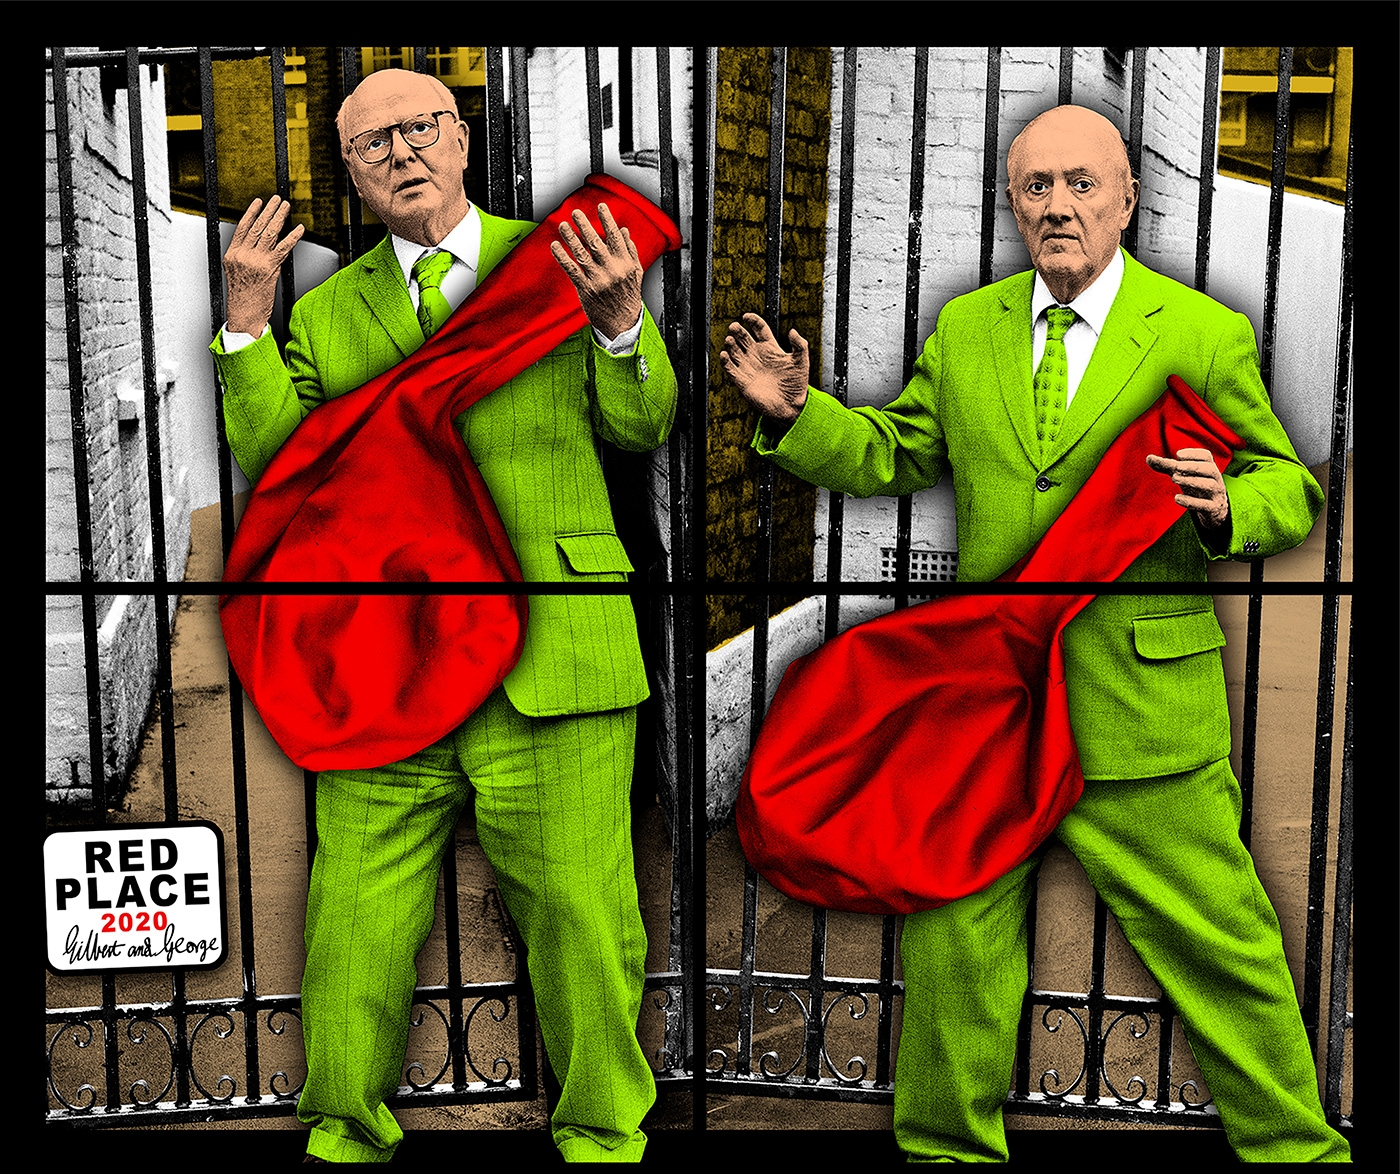 GILBERT & GEORGE, RED PLACE, 2020